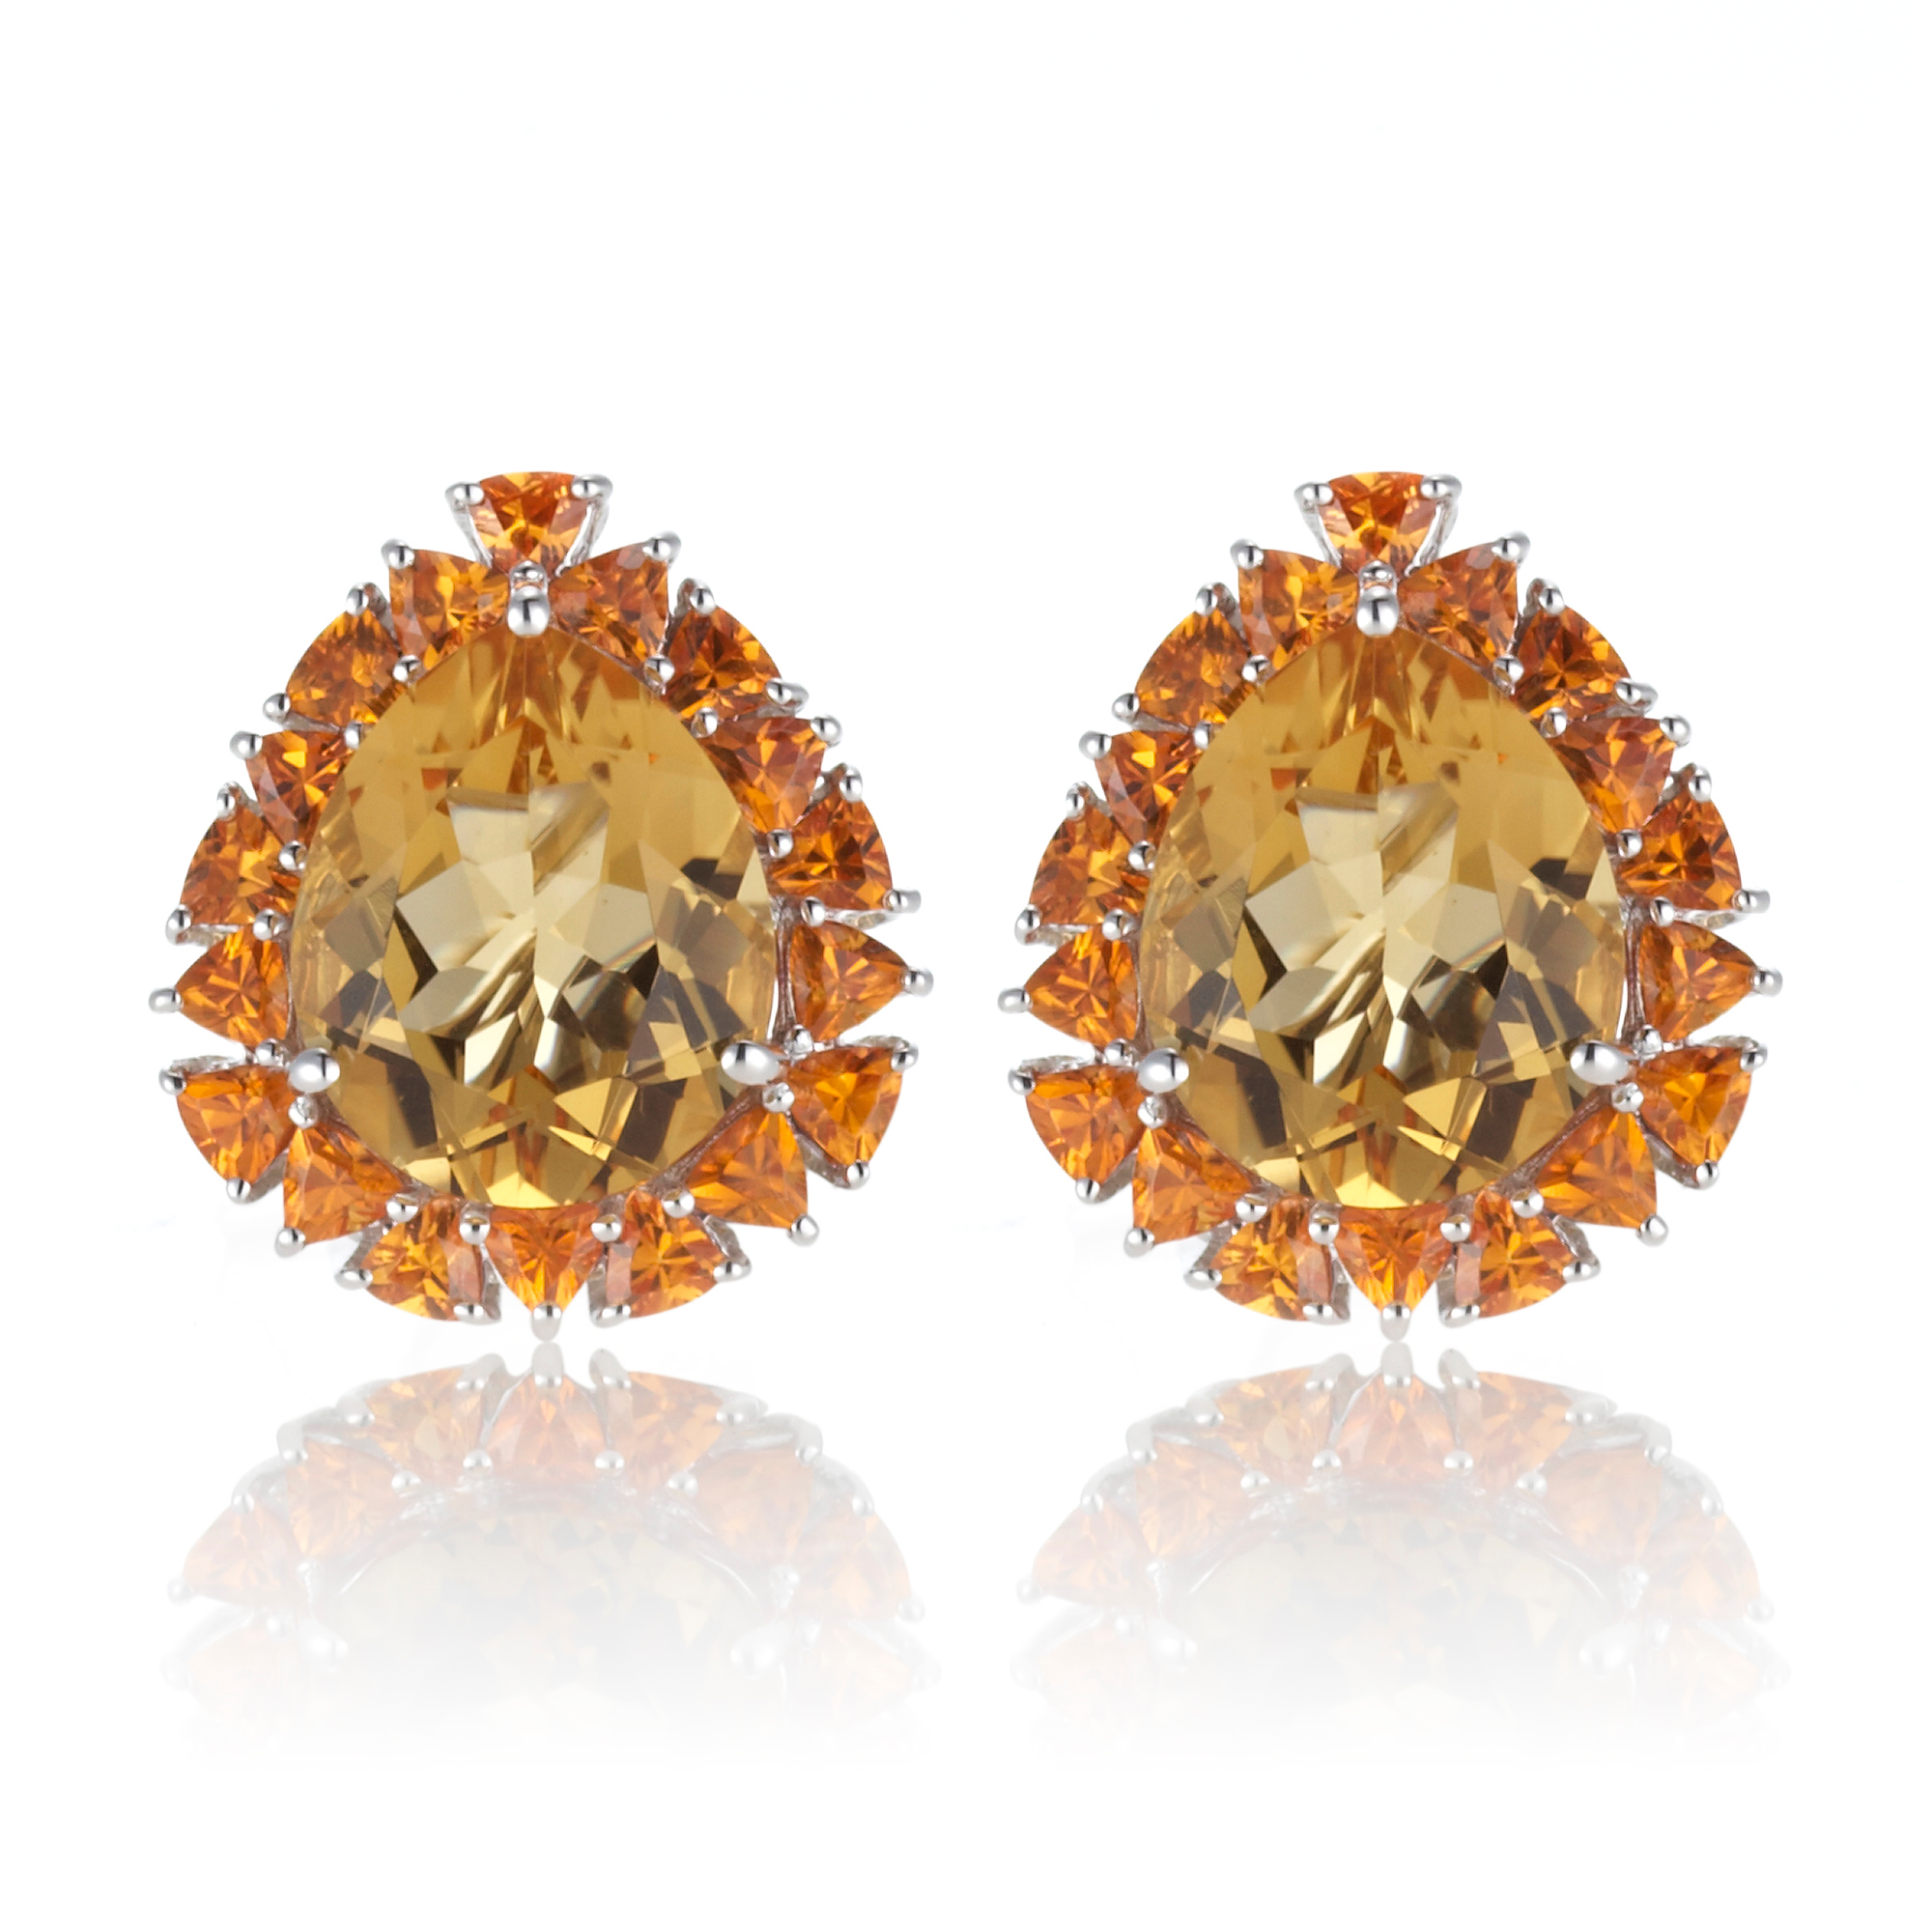 Gump's Citrine & Spessartite Pear Halo Earrings